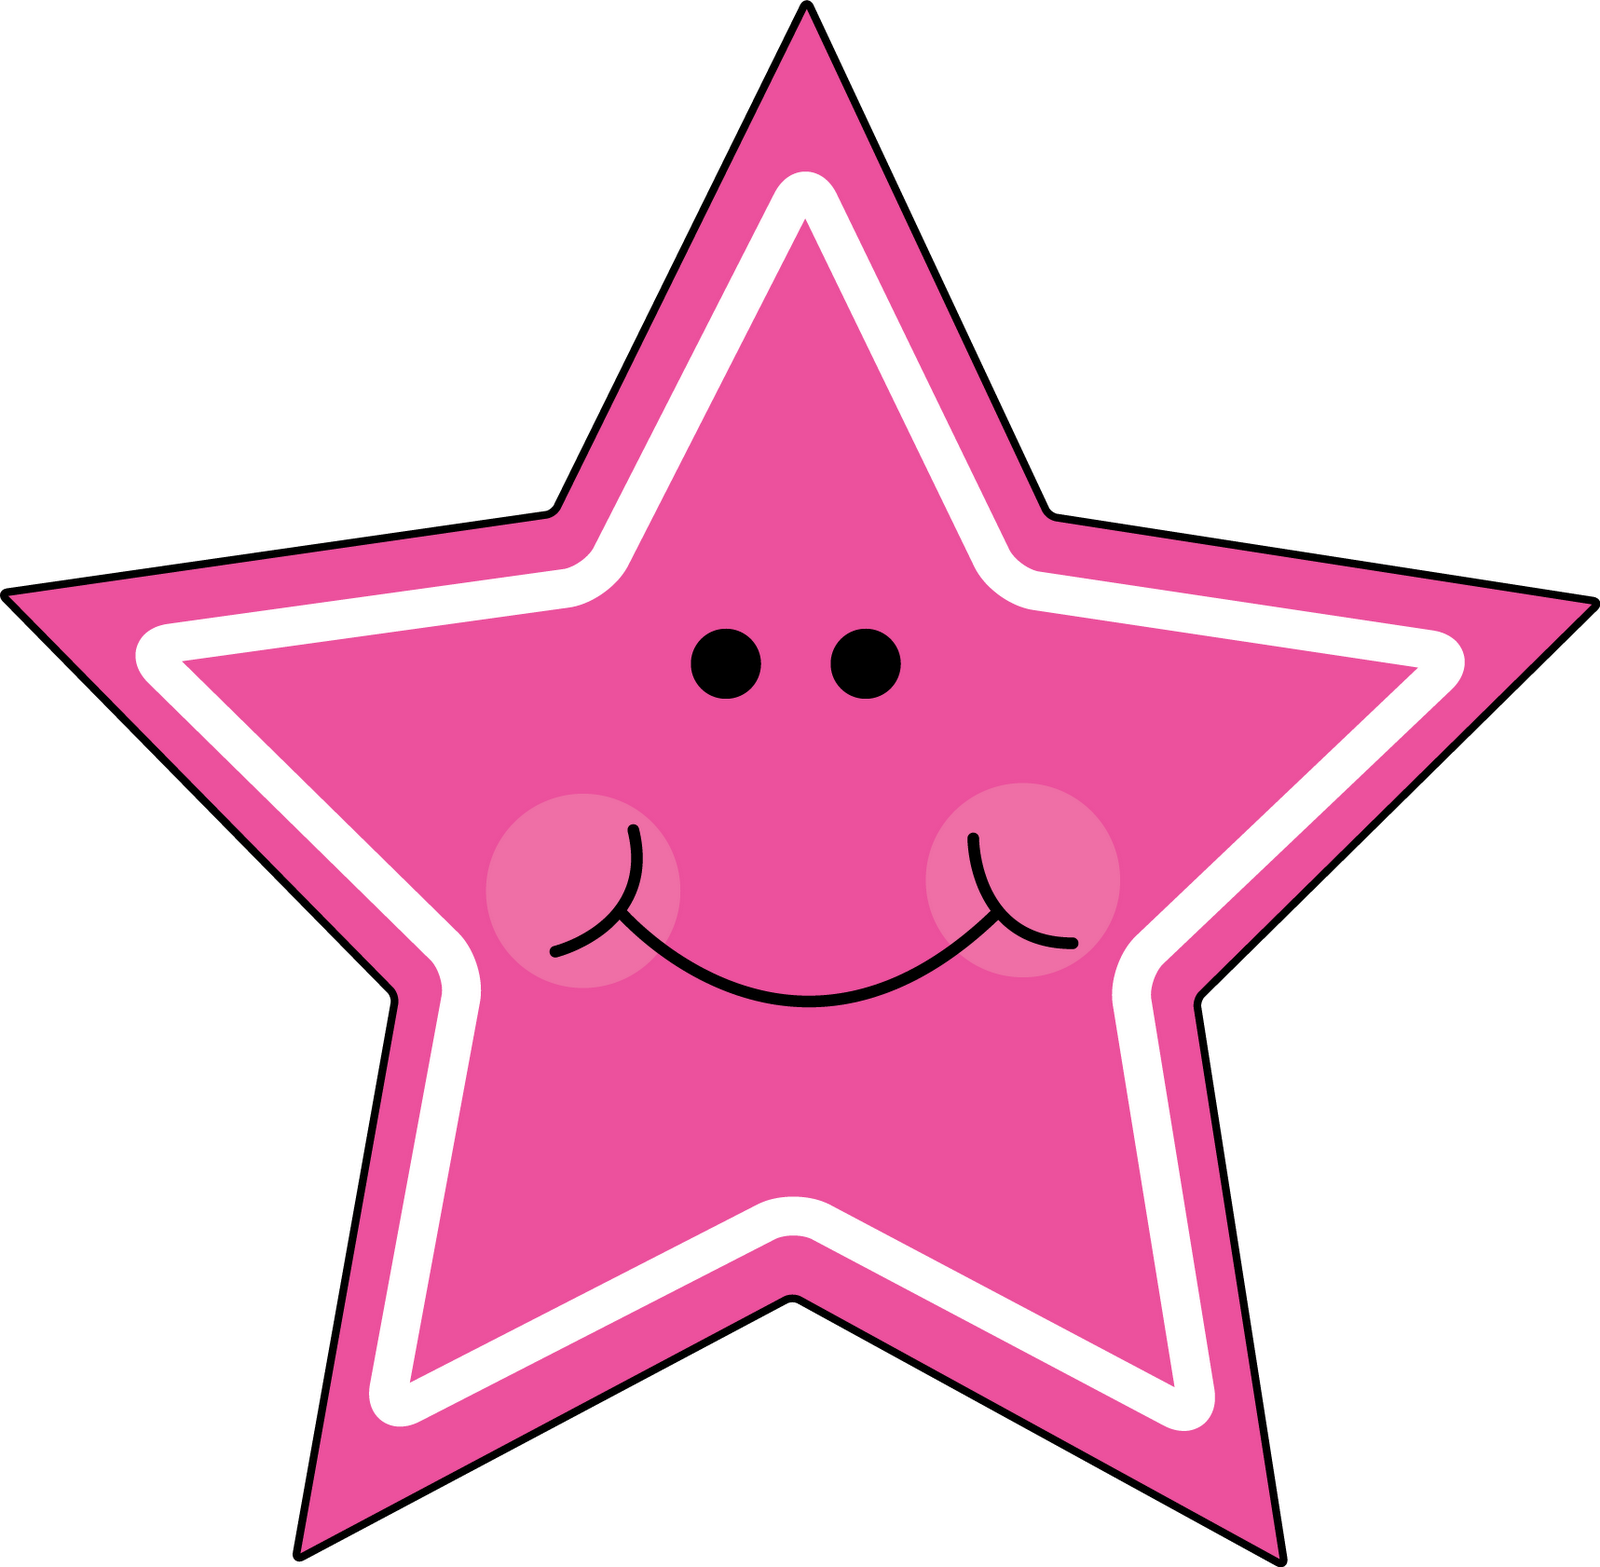 Star clipart for kids clipart best for Images of stars for kids